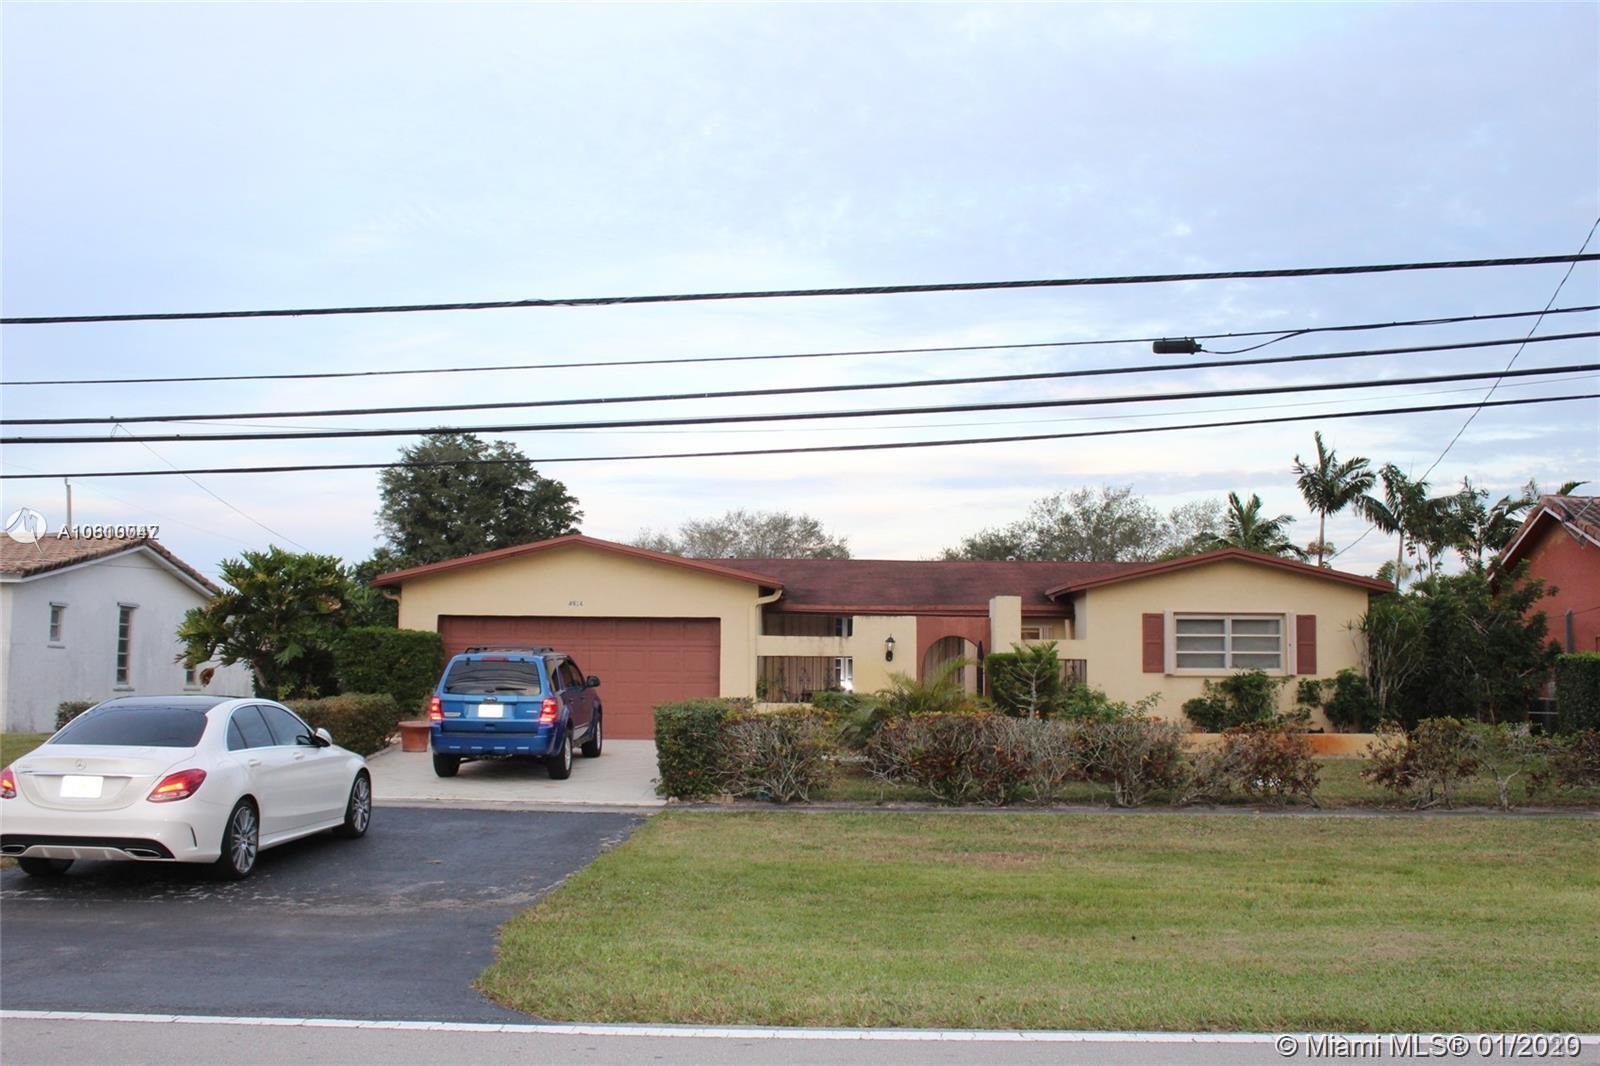 BEAUTIFUL SINGLE FAMILY HOME IN COOPER CITY. GREAT SCHOOLS WITH 2 CAR GARAGE ATTACHED WITH A LOT OF EXTRA PARKING 3 BEDROOMS 2 BATHROOMS FULL OPEN KITCHEN WITH POOL AND GOLF VIEW. SCREEN SWIMMING POOL ENCLOSURE AND BIG BACKYARD.